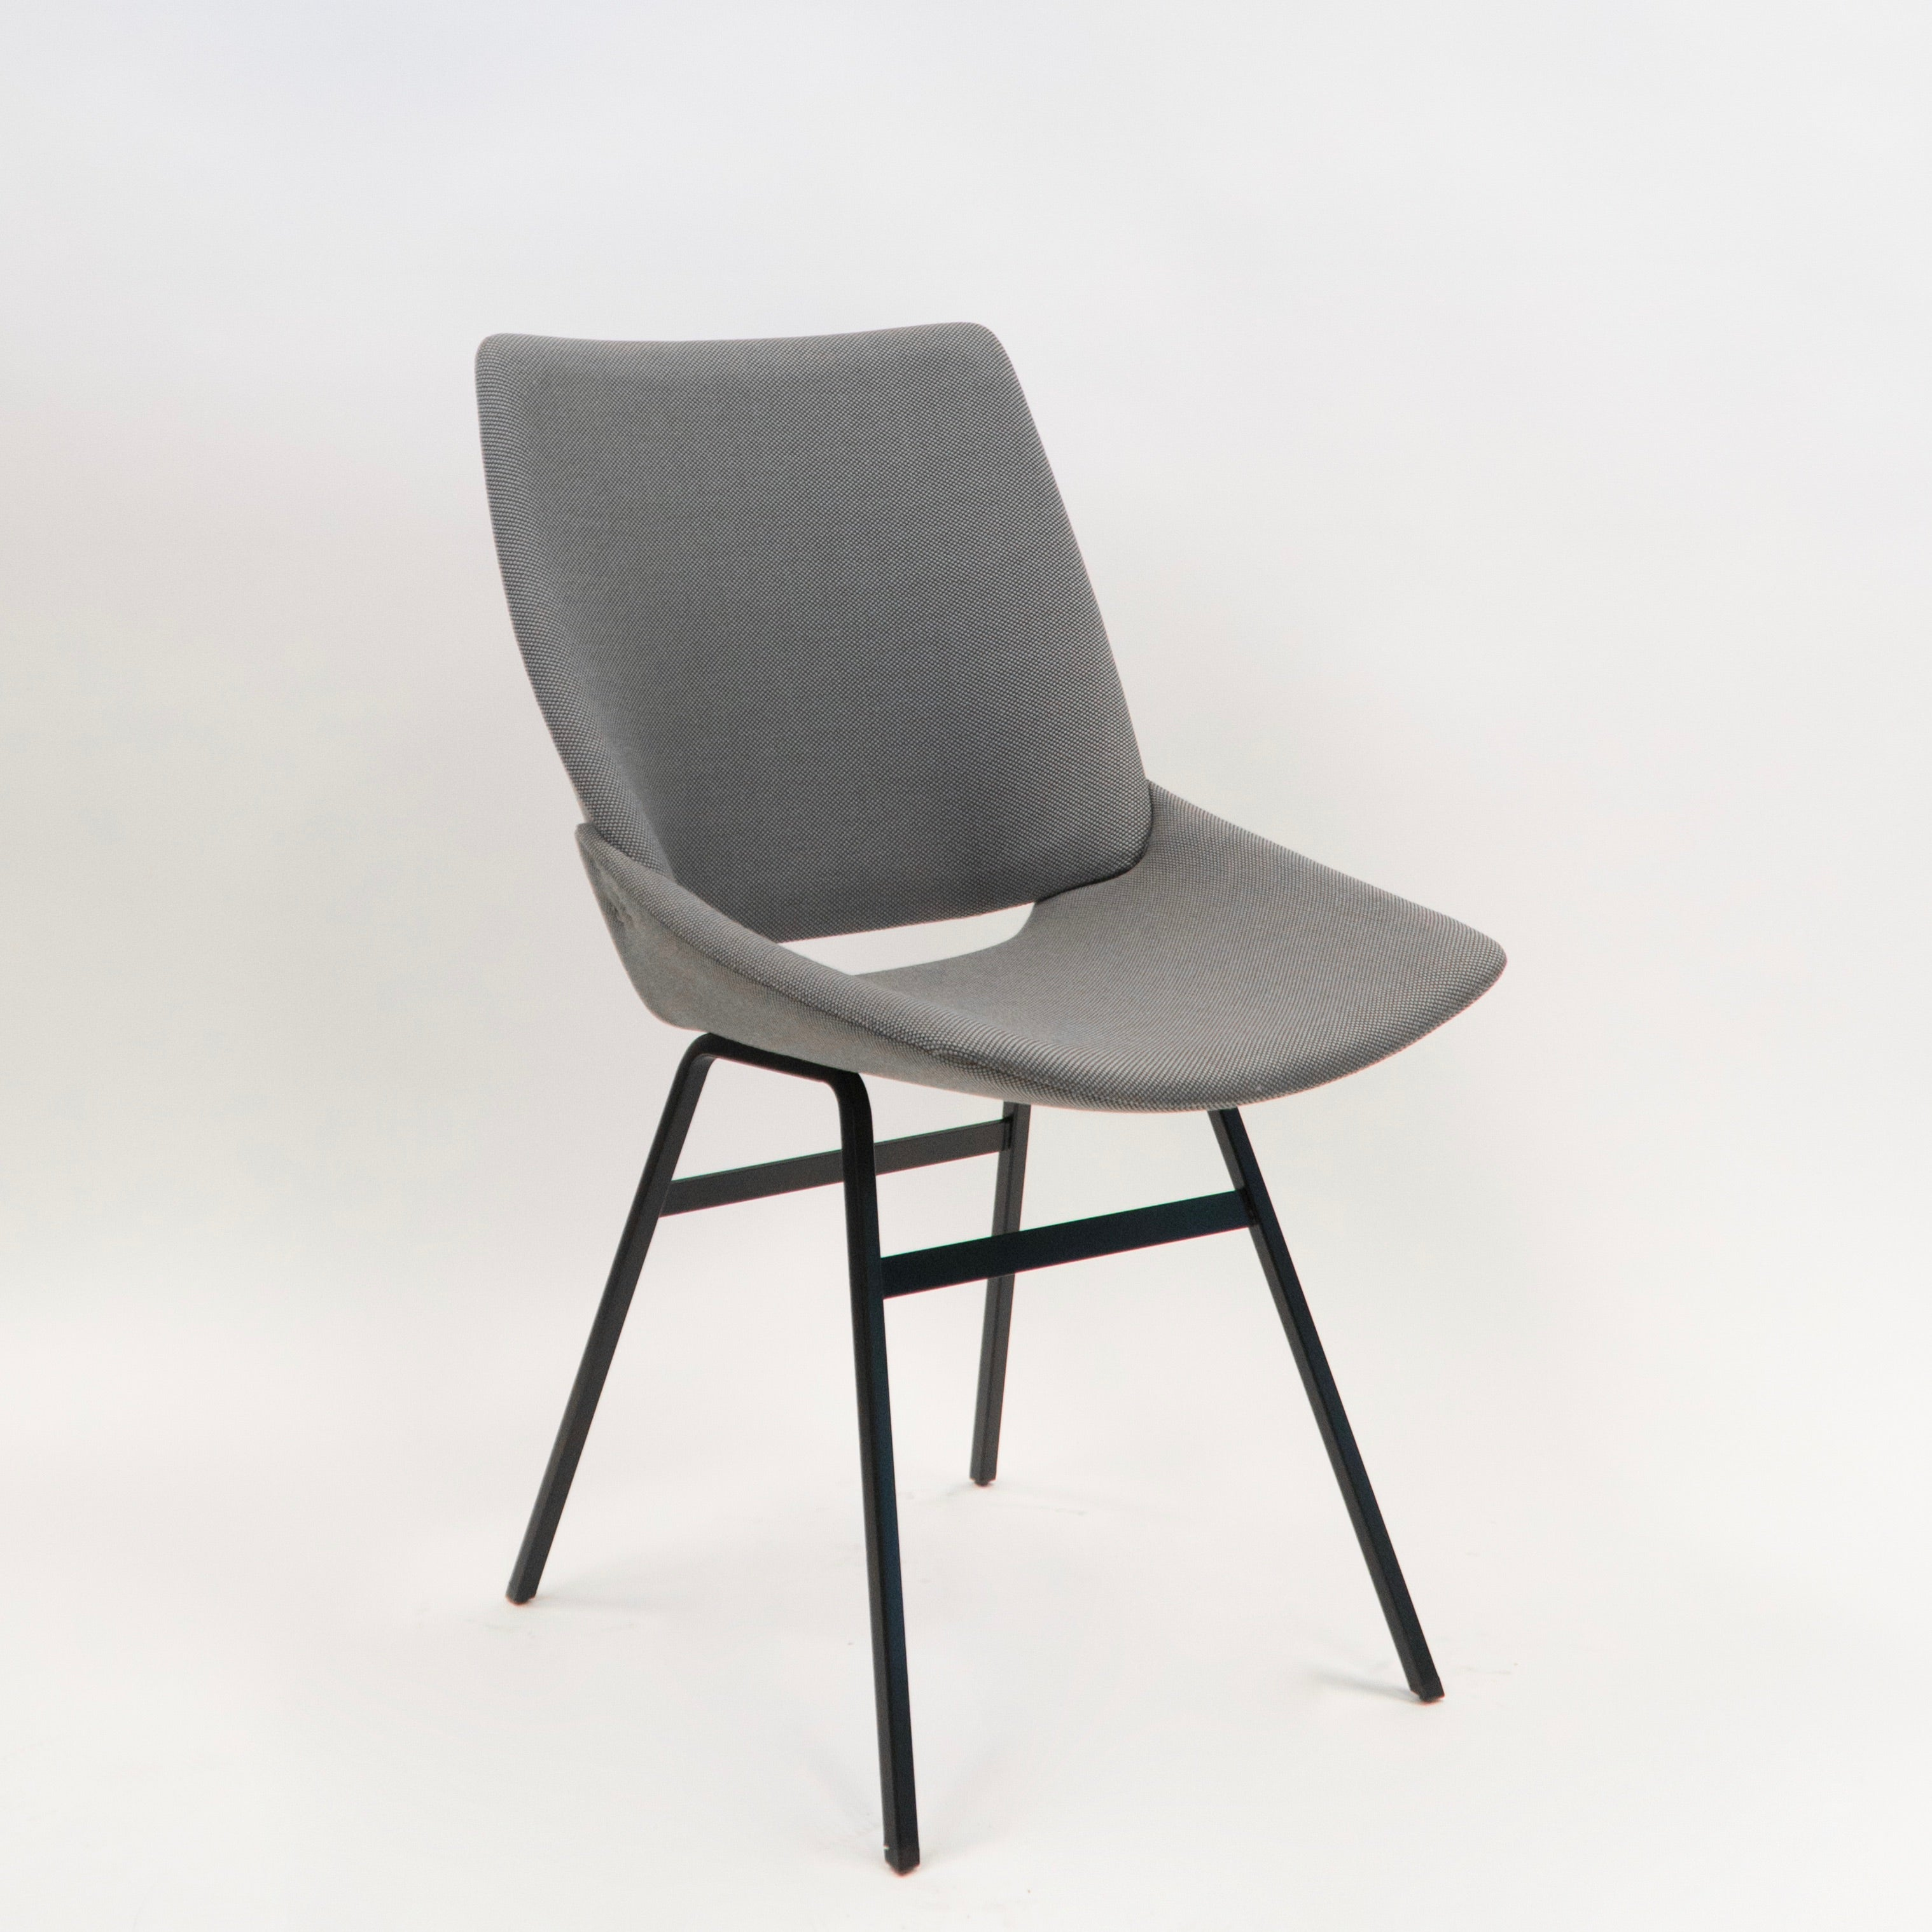 Shell Chair fully upholstered in Rohi prime grey textile